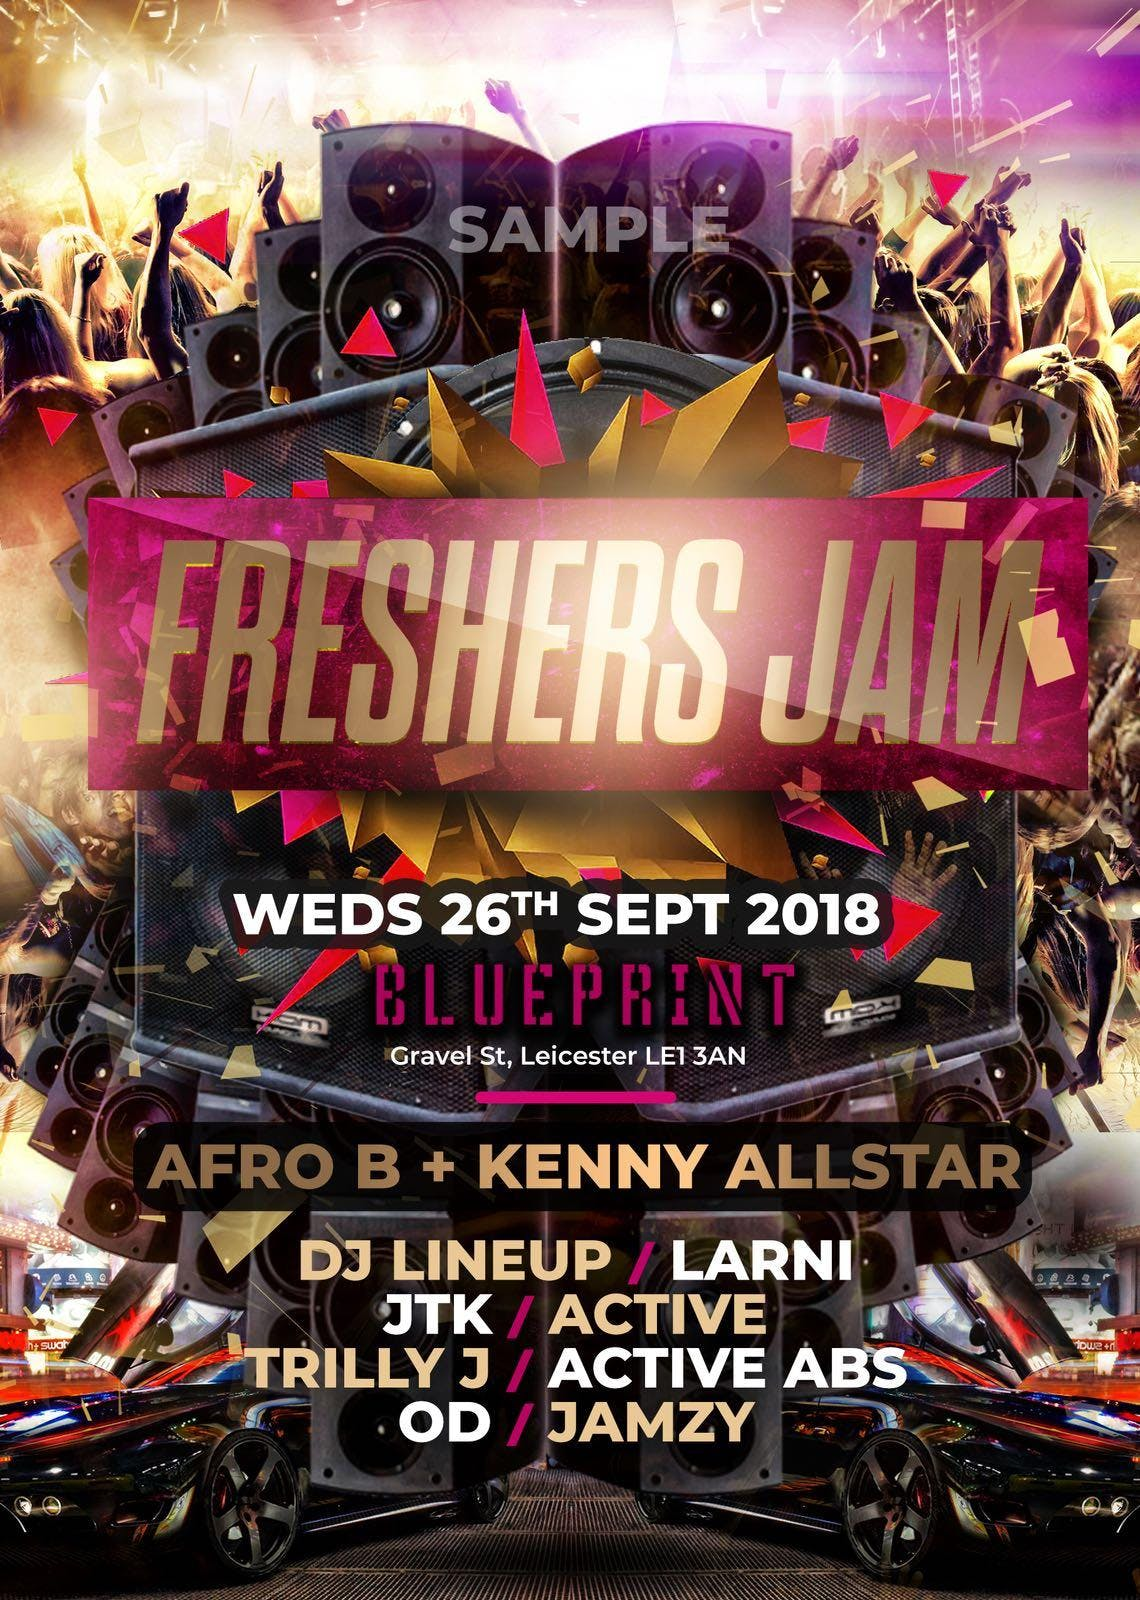 Freshers jam presented by uncle teo pr 26 sep 2018 freshers jam presented by uncle teo pr malvernweather Choice Image